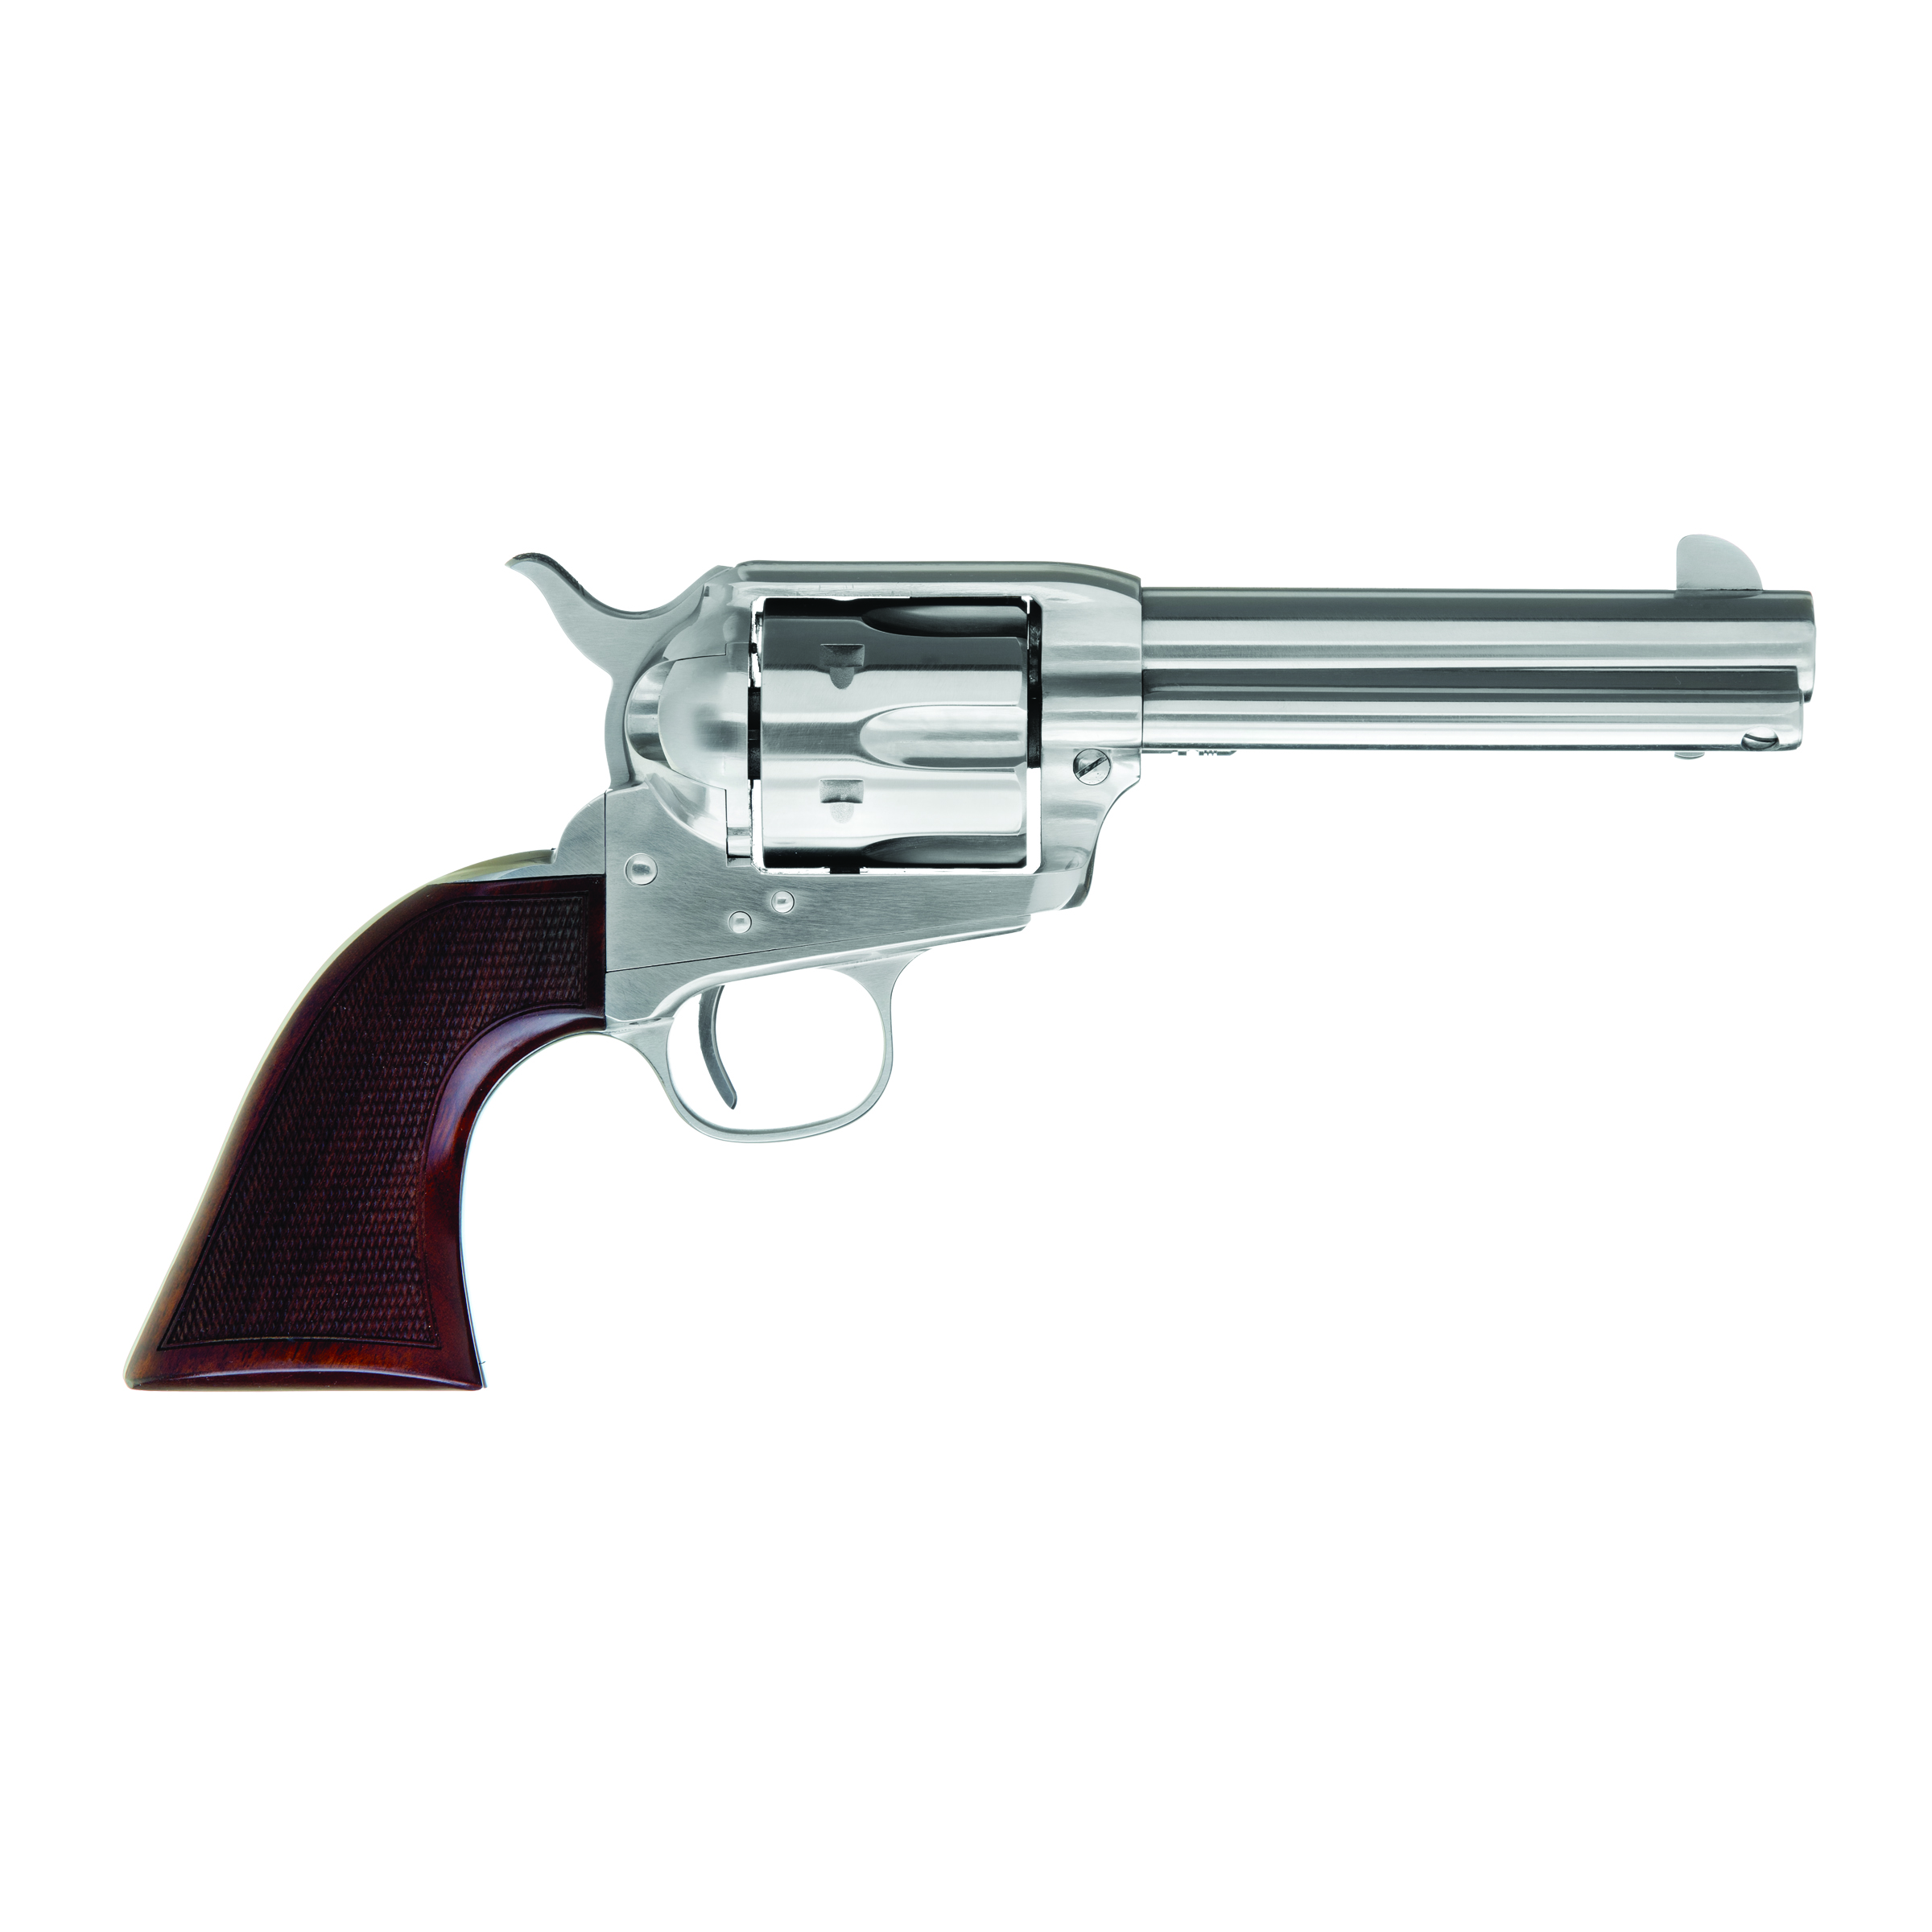 Cimarron uberti evil roy single action revolver 475 357 magnum cimarron uberti evil roy single action revolver 475 357 magnum 38 sp stainless steel er4523 evil roy online store thecheapjerseys Image collections